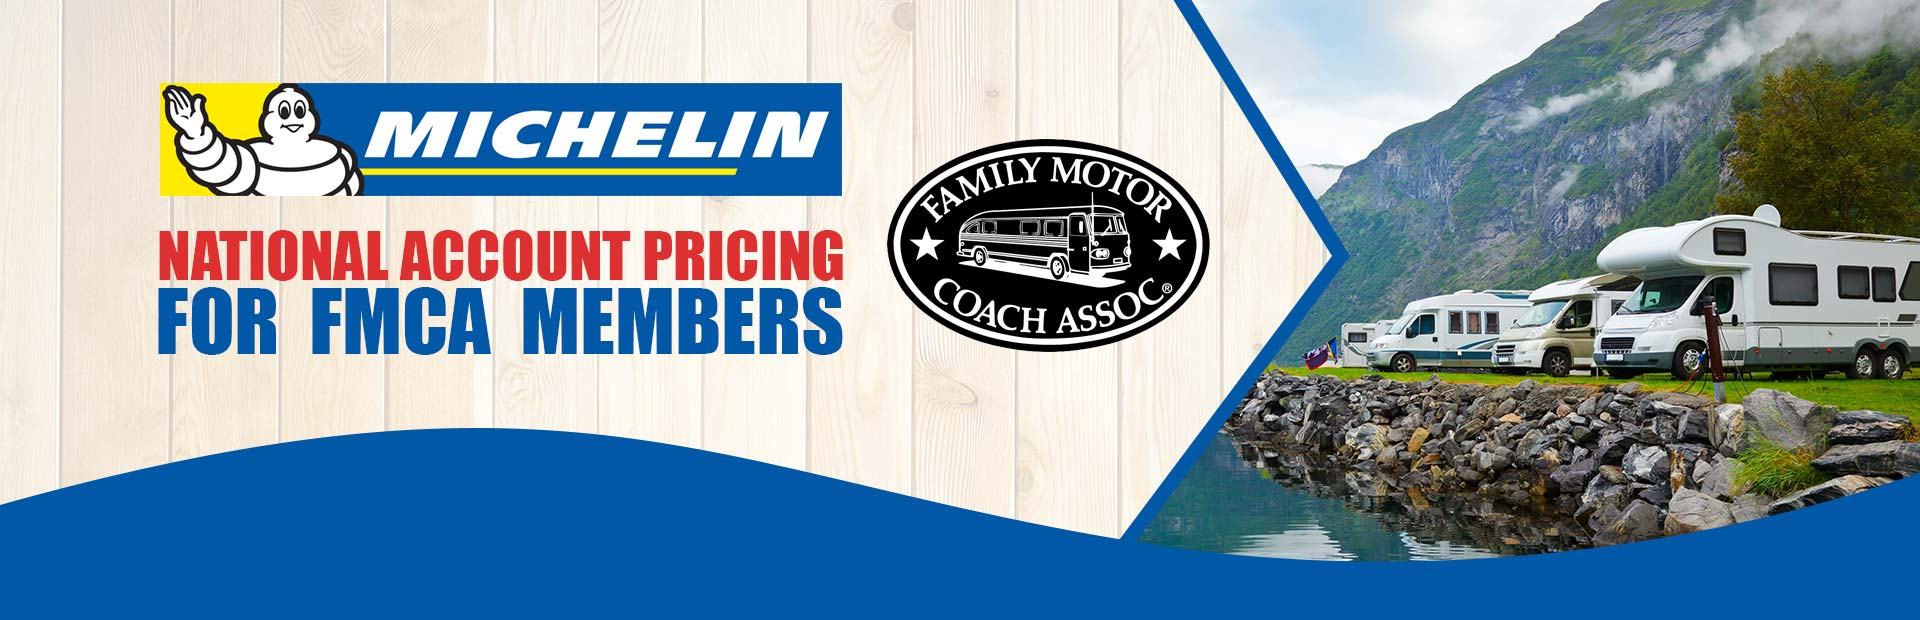 Michelin® National Account Pricing for FMCA Members: Contact us for details.